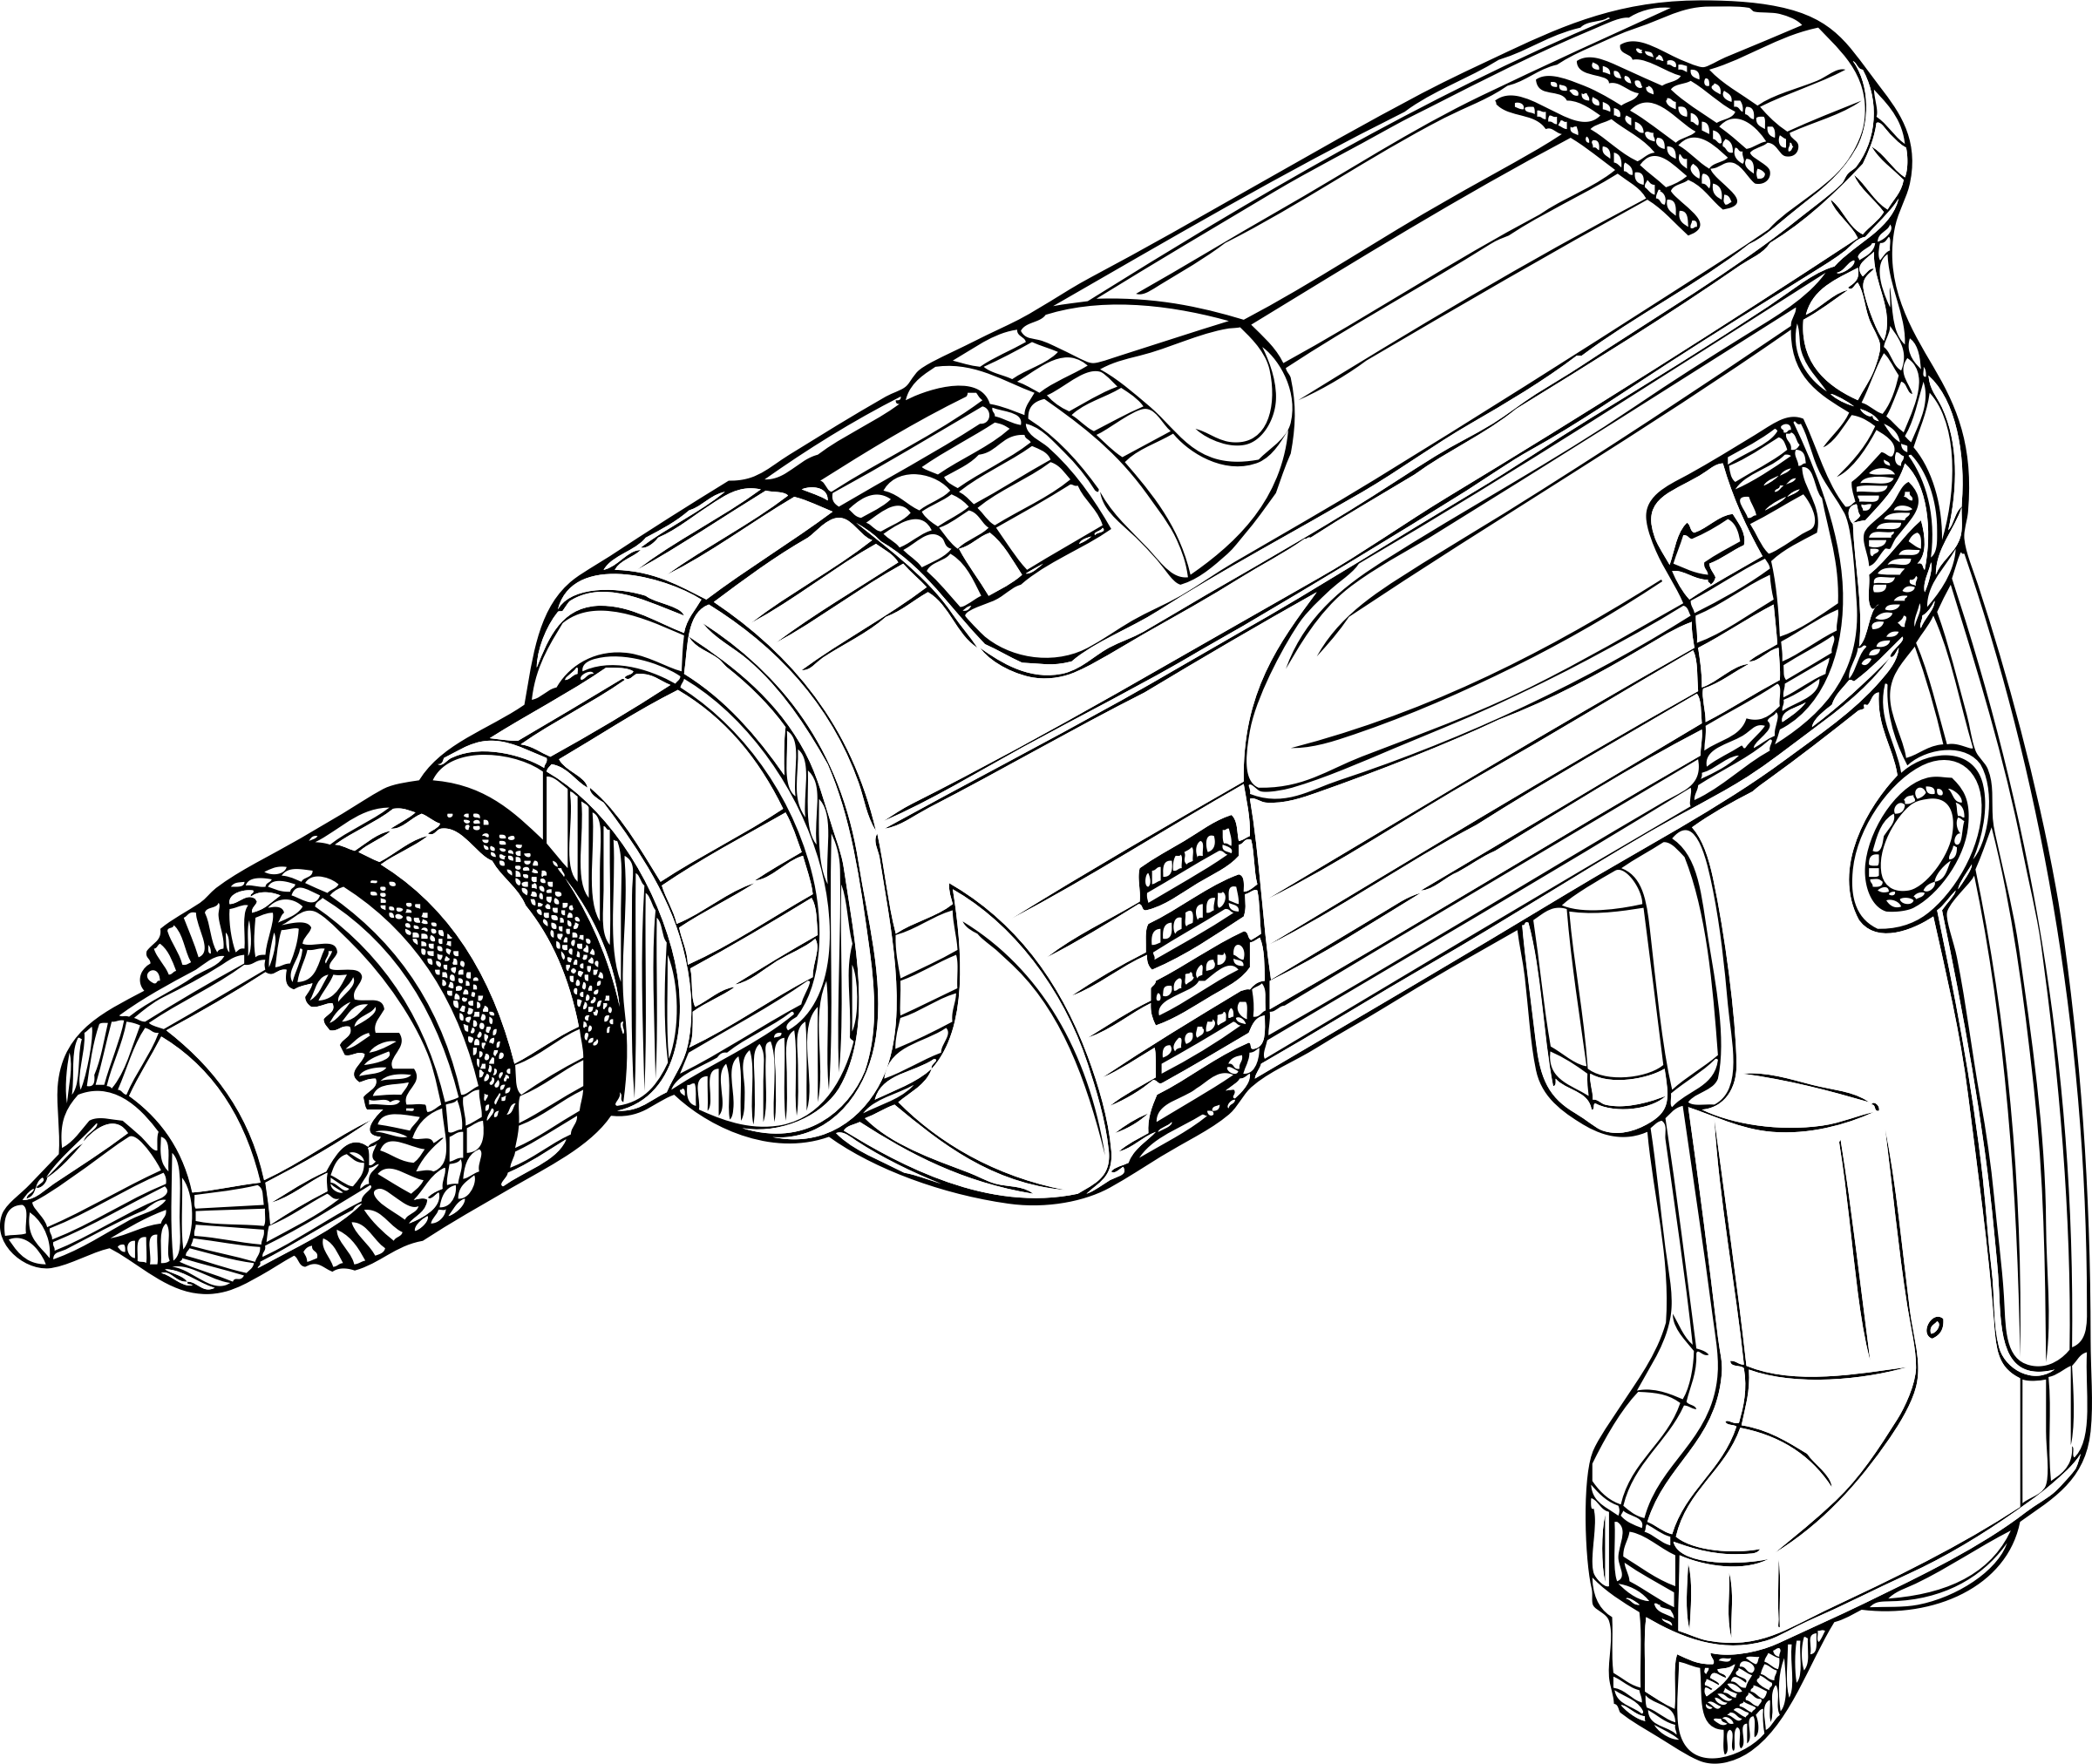 Electric big image png. Drill clipart hand drill